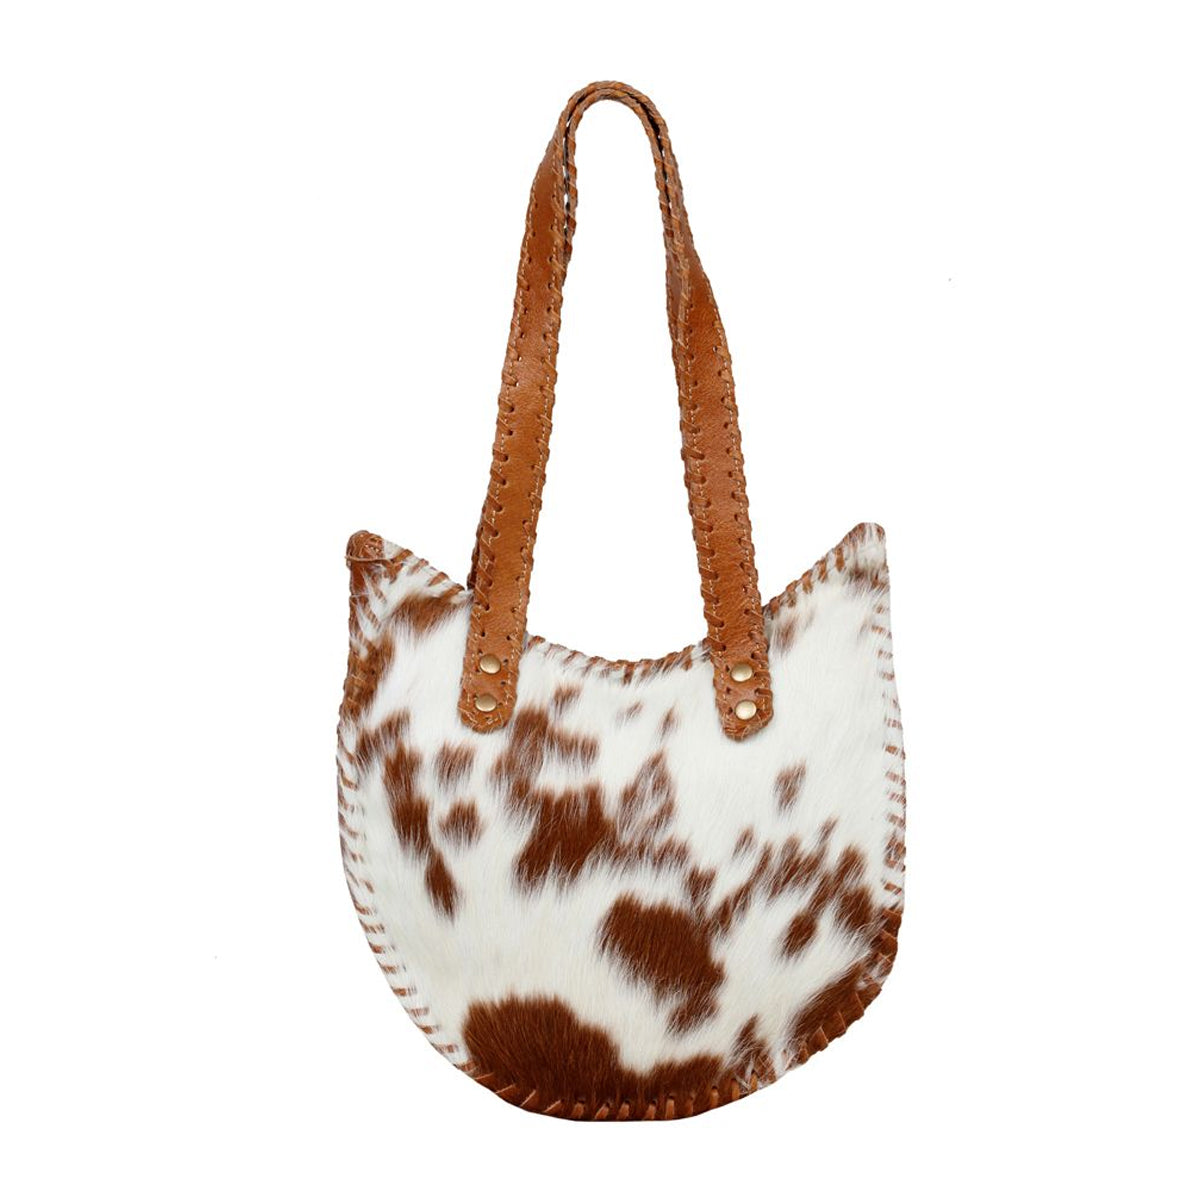 Myra Bag Forever Young Leather And Hairon Bag Lazy J Ranch Wear Shop leather bags gallery to find the best leather bags online. lazy j ranch wear